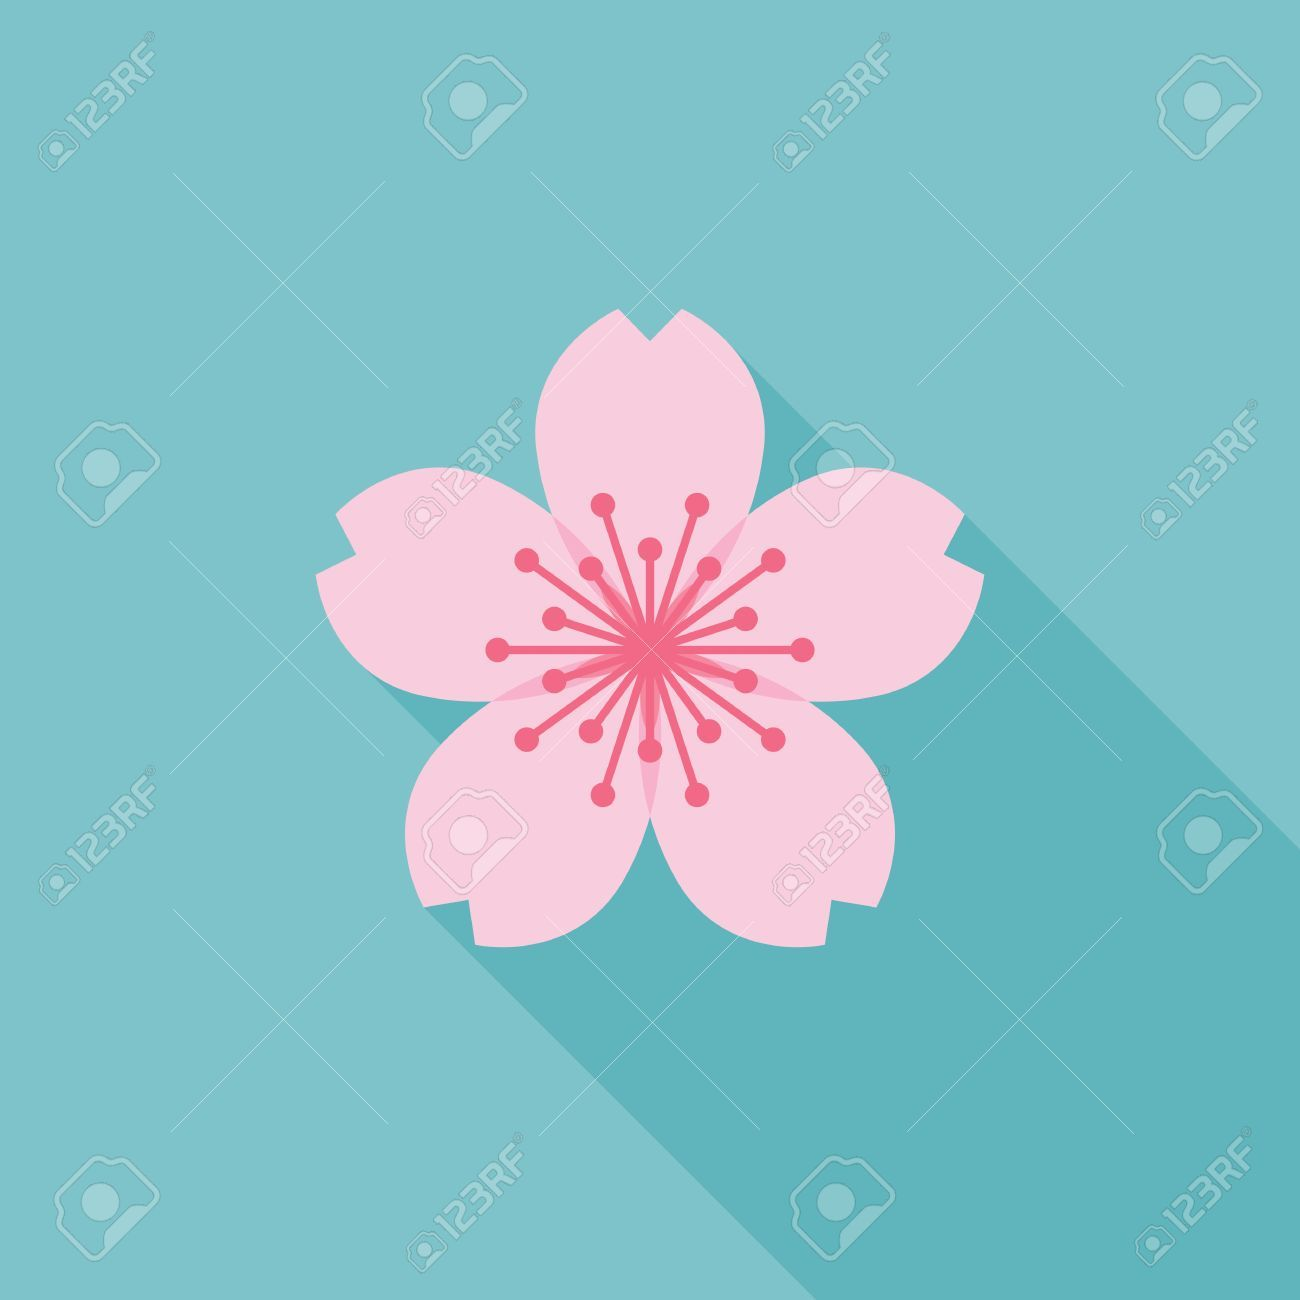 Image result for cherry blossom icon | Drawing ideas | Pinterest ...